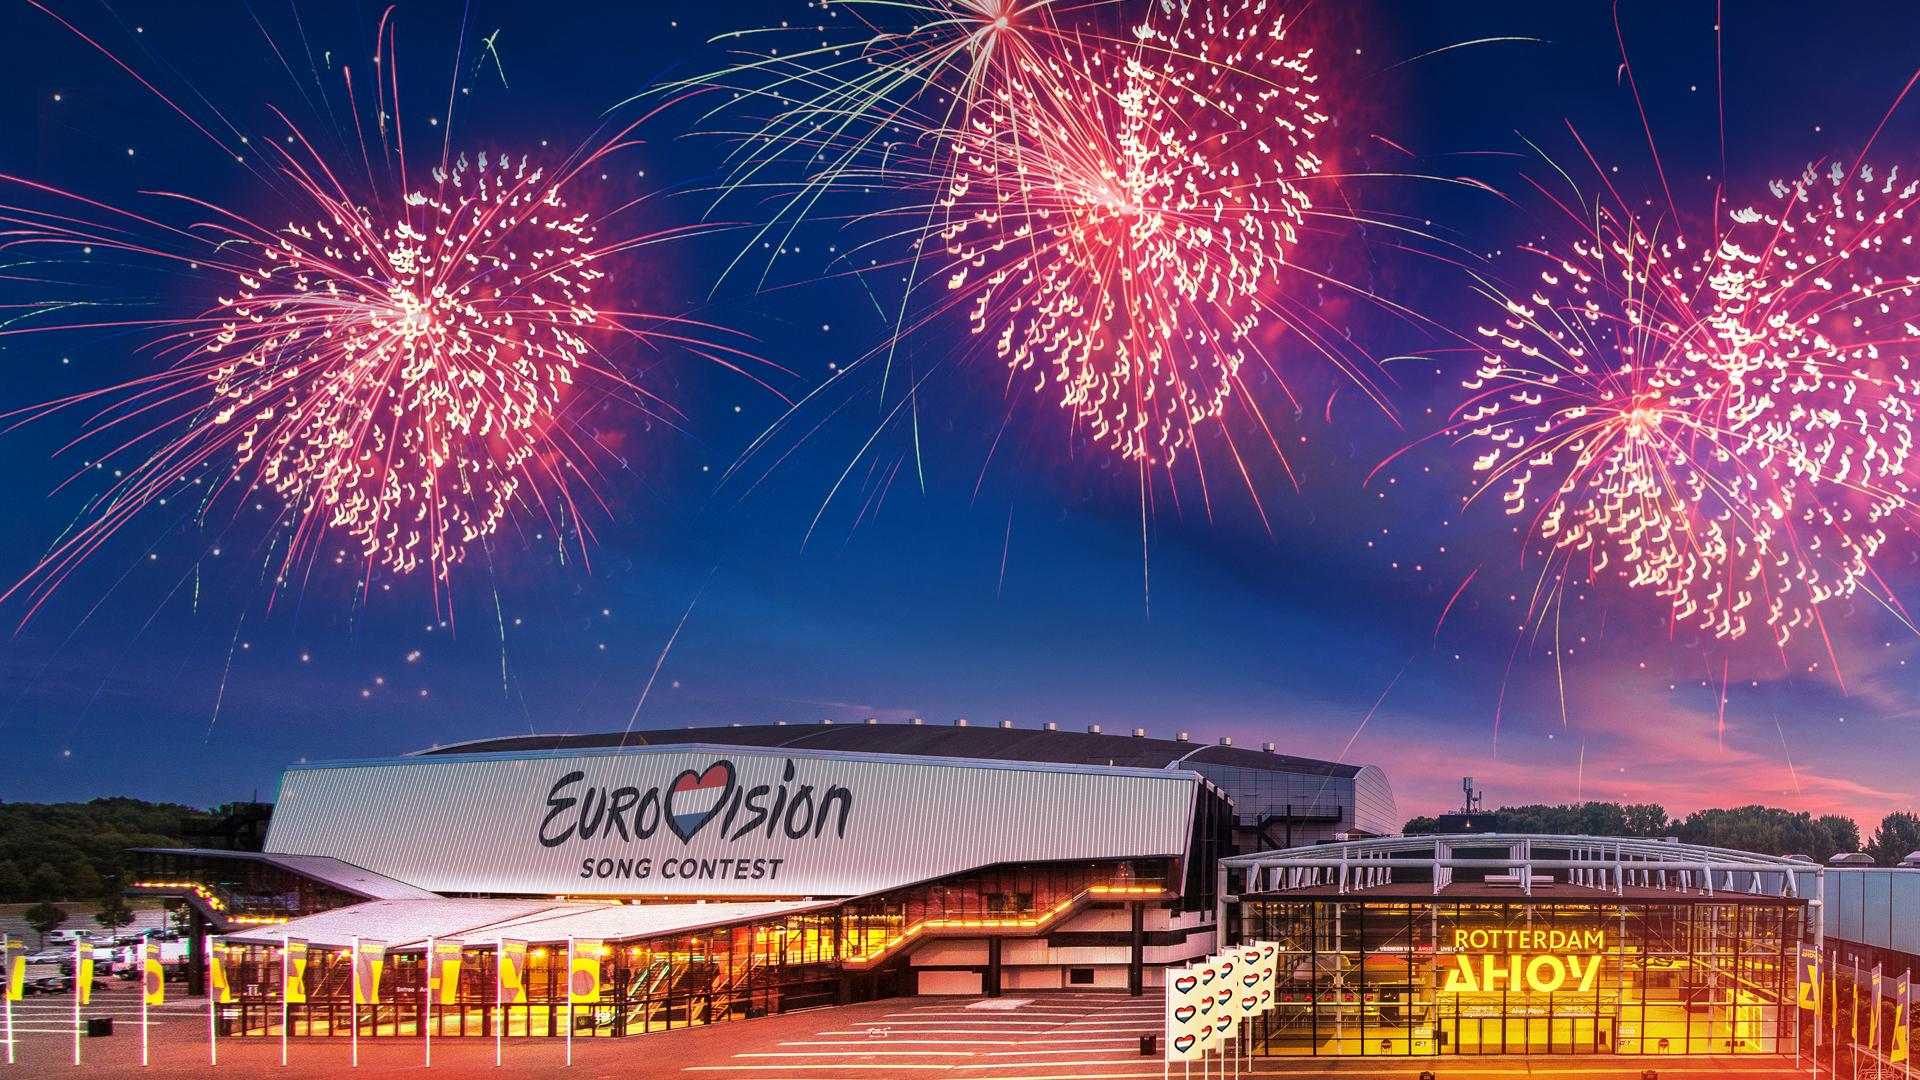 The Eurovision Song Contest is coming to Rotterdam!